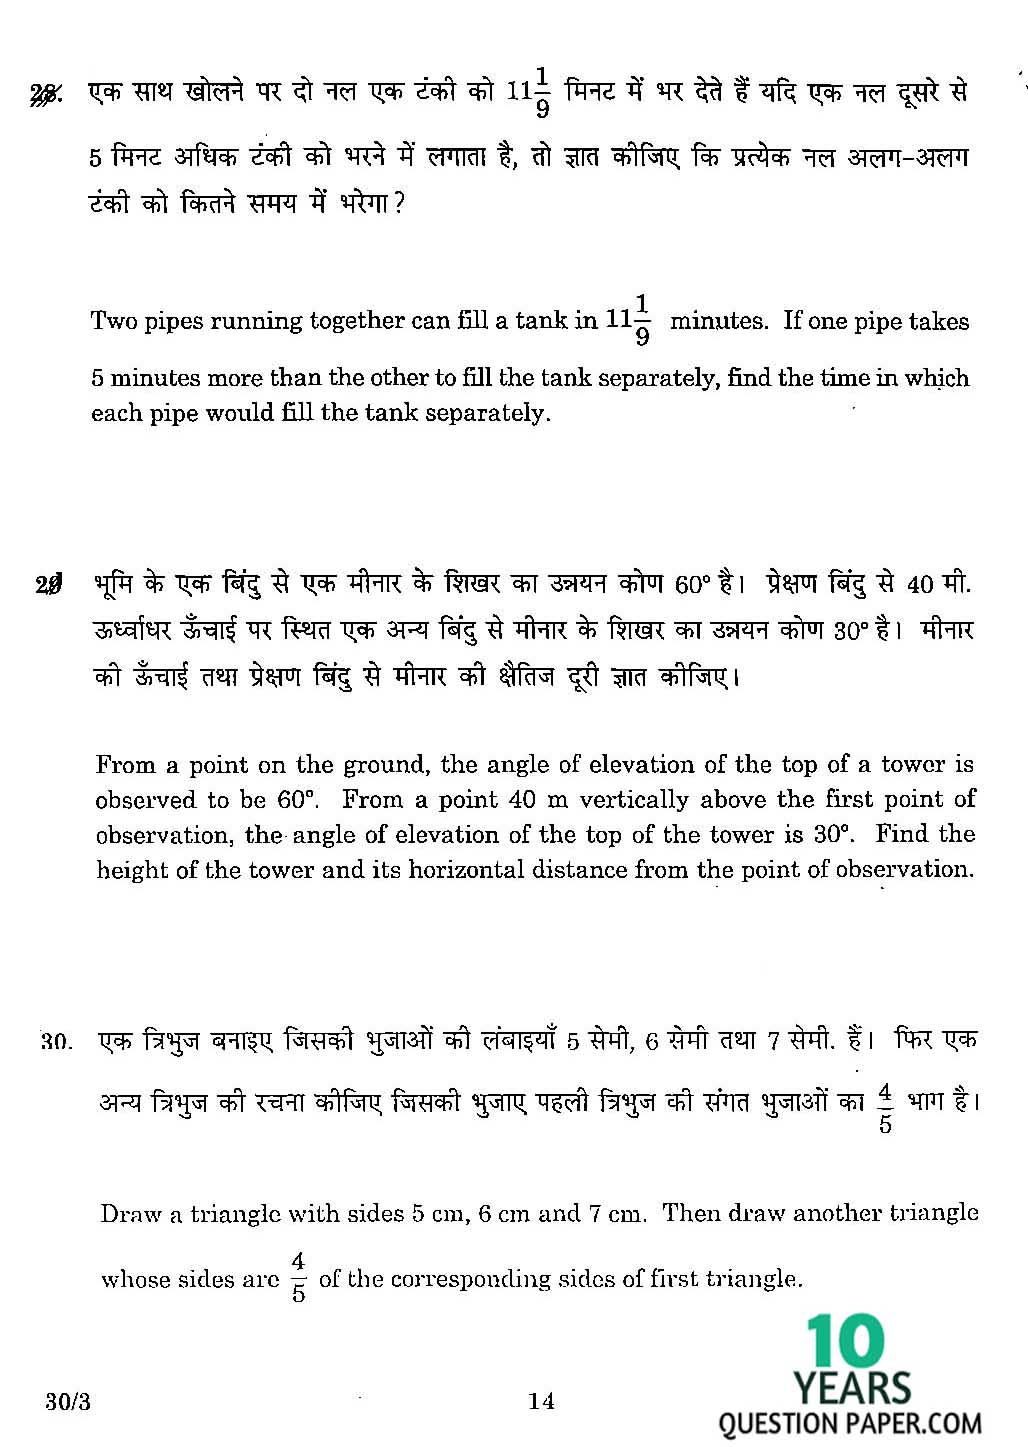 CBSE Class 10 Mathematics 2016 Question Paper